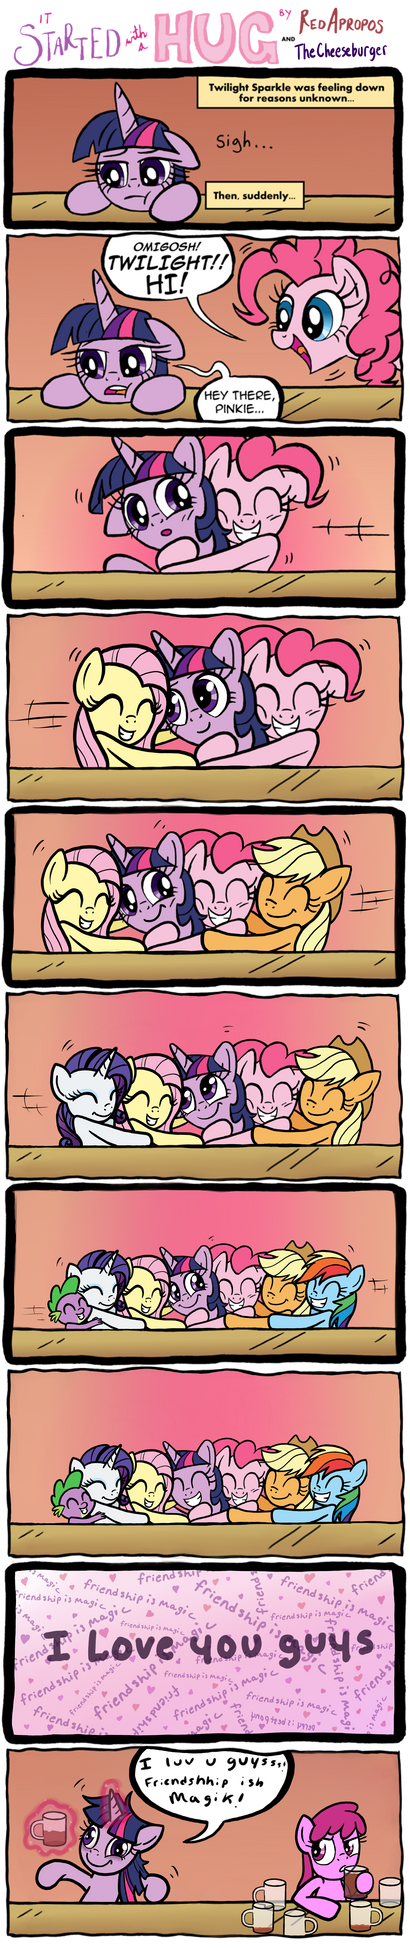 It Started with a Hug by RedApropos and Me by TheCheeseburger